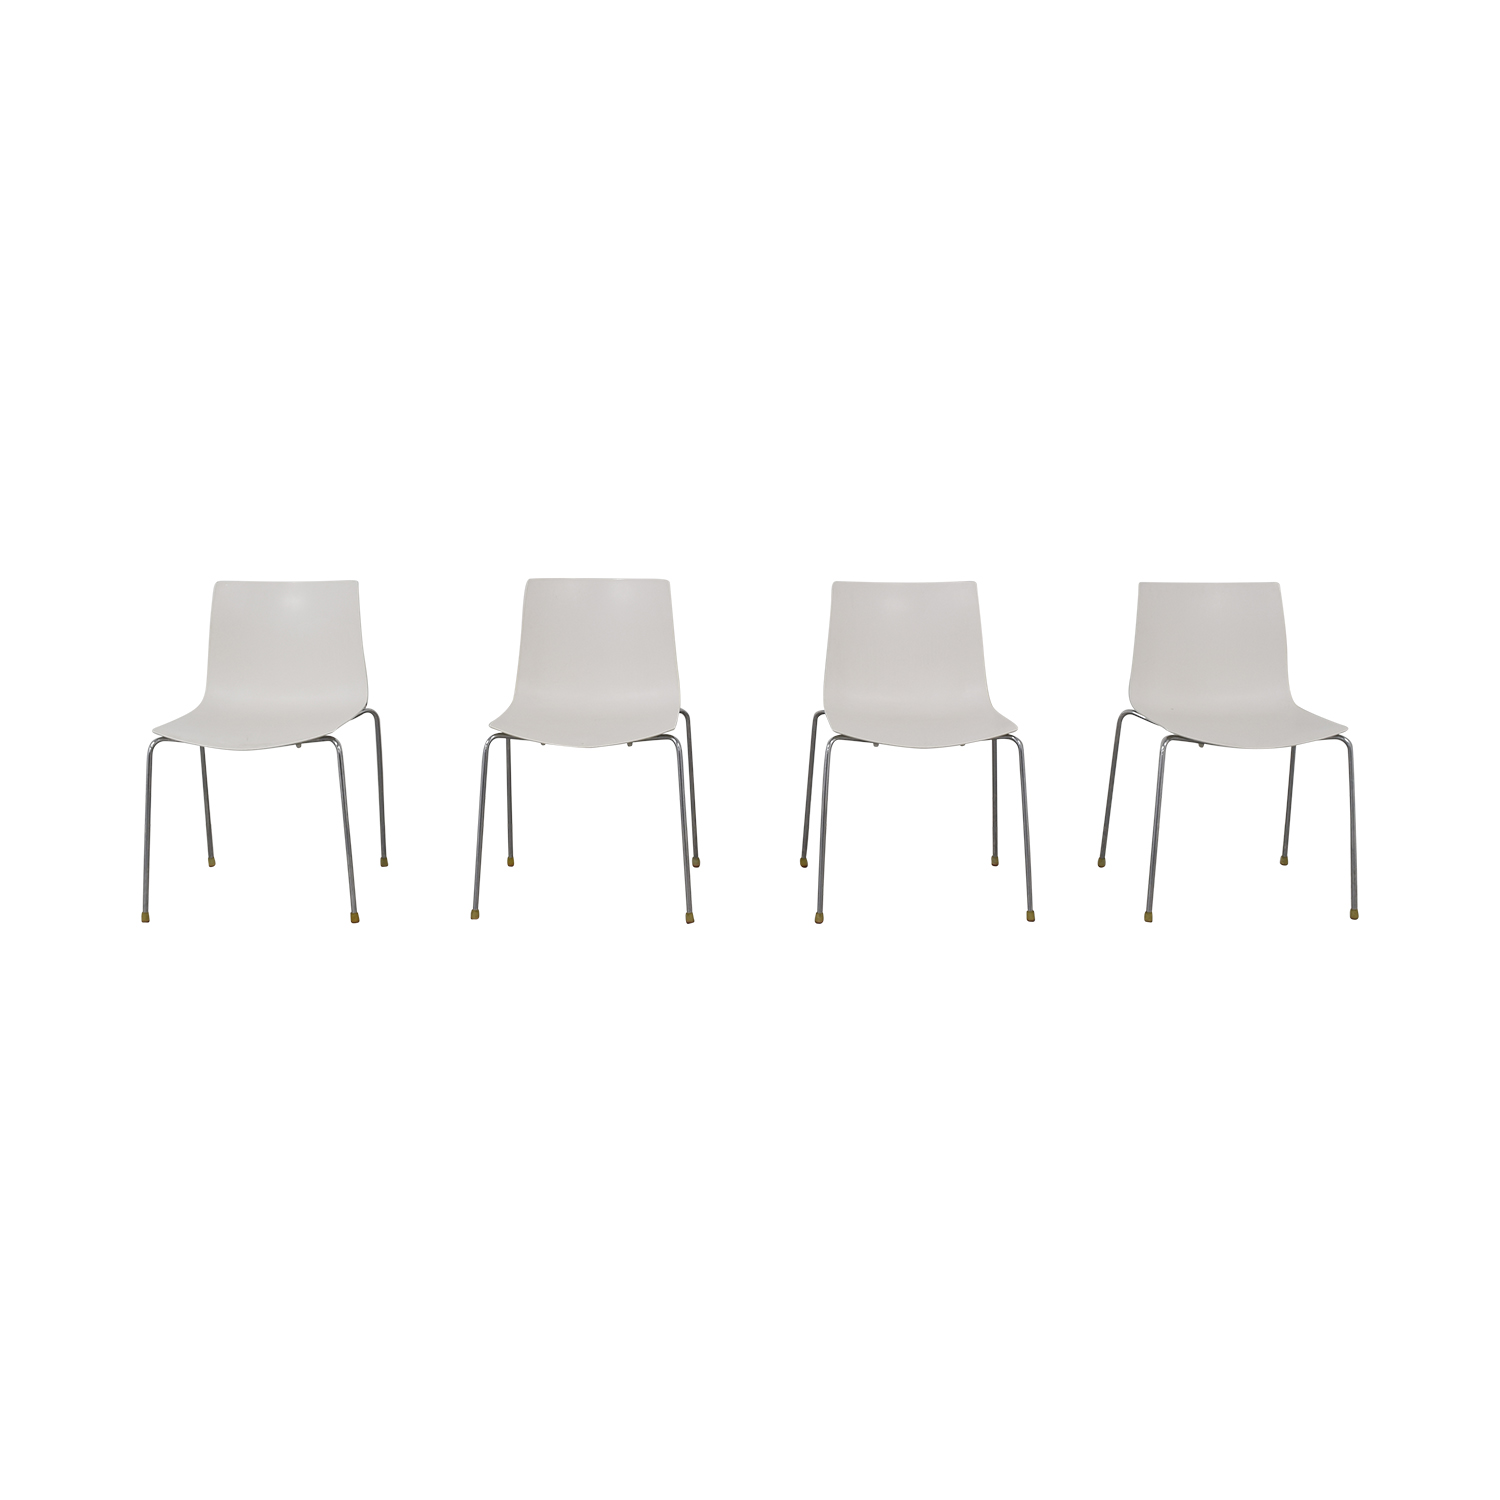 "Arper Arper ""Catifa 46"" Chairs nj"